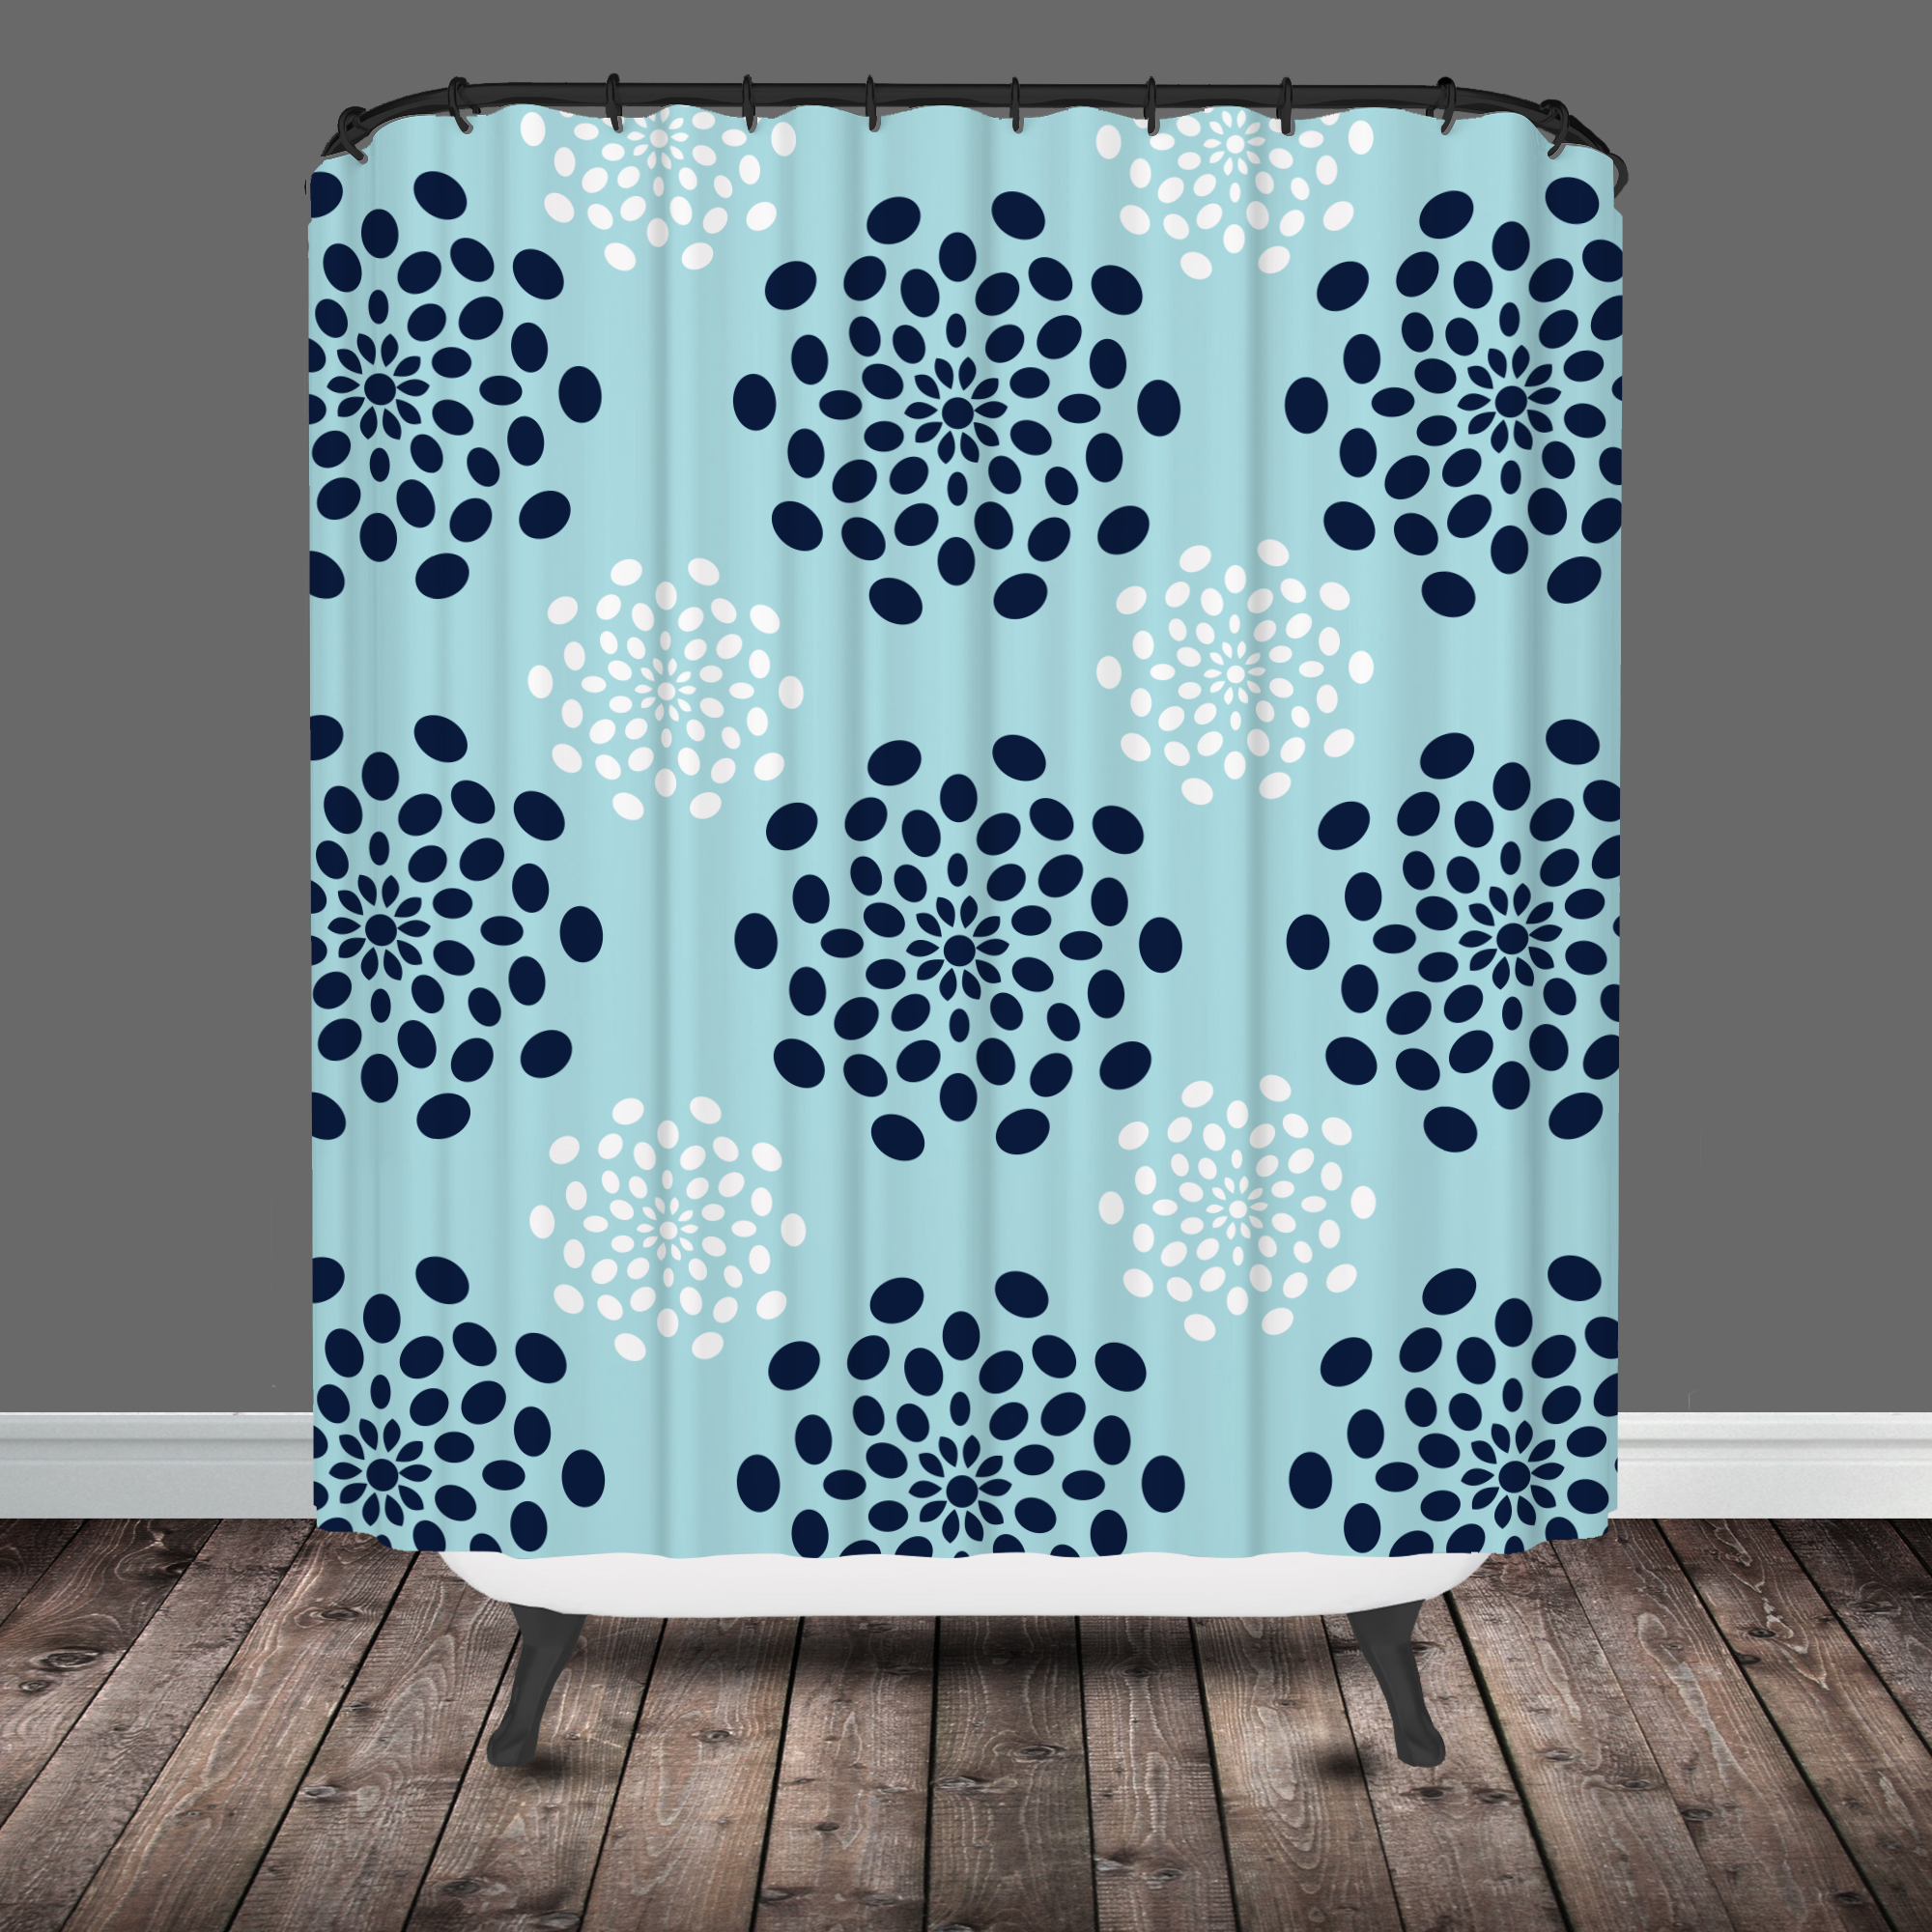 dark blue shower curtain. mod flower shower curtain Seafoam  Navy Mod Flower Shower Curtain